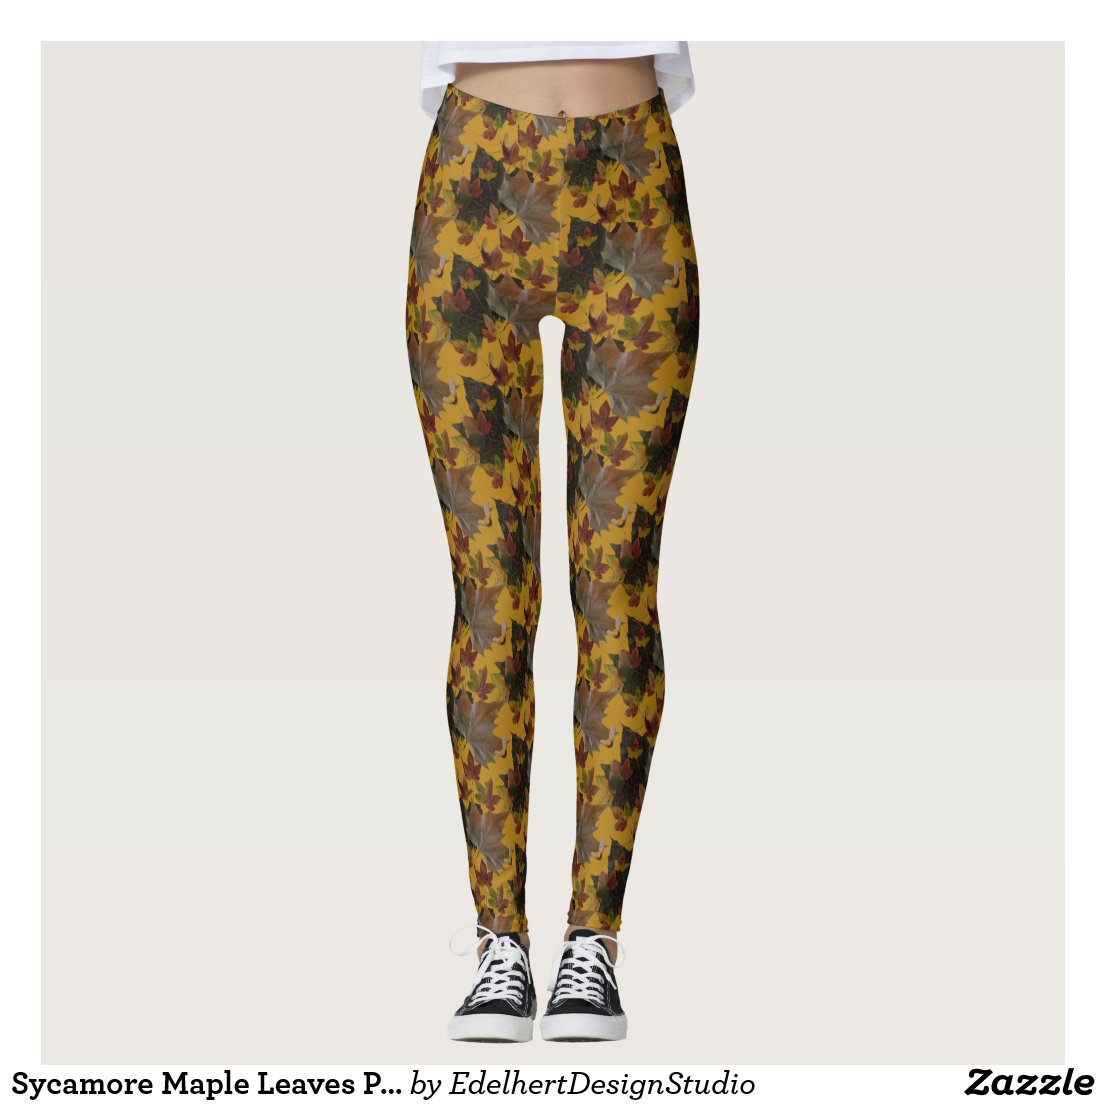 Sycamore Maple Leaves Pattern Legging